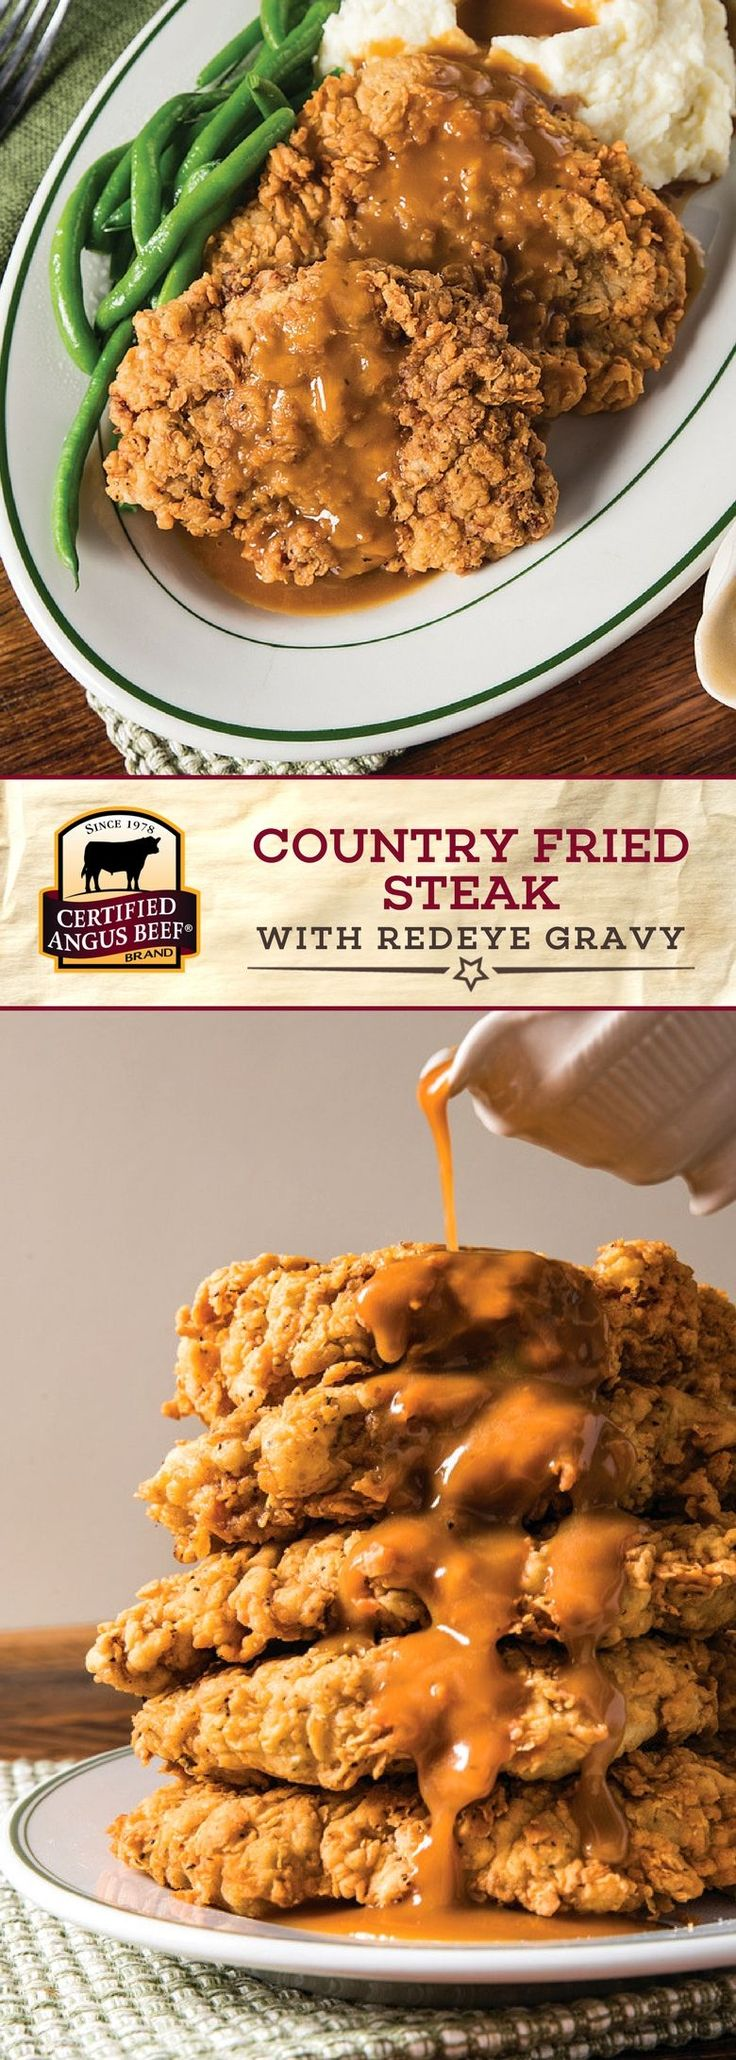 It's easy to make delicious Country Fried Steak with Redeye Gravy at home! Start with Certified Angus Beef®️ brand cubed steaks, MARINATED overnight in buttermilk, eggs, and light seasoning. Then, dredge in flour, the mixture, and then flour again, to ensure that they are completely coated and come out extra CRISPY when you pan fry them! Delicious Redeye Gravy made with COFFEE and HOT SAUCE tops off the steaks. #bestangusbeef #certifiedangusbeef #beefrecipe #comfortfood #steakrecipe